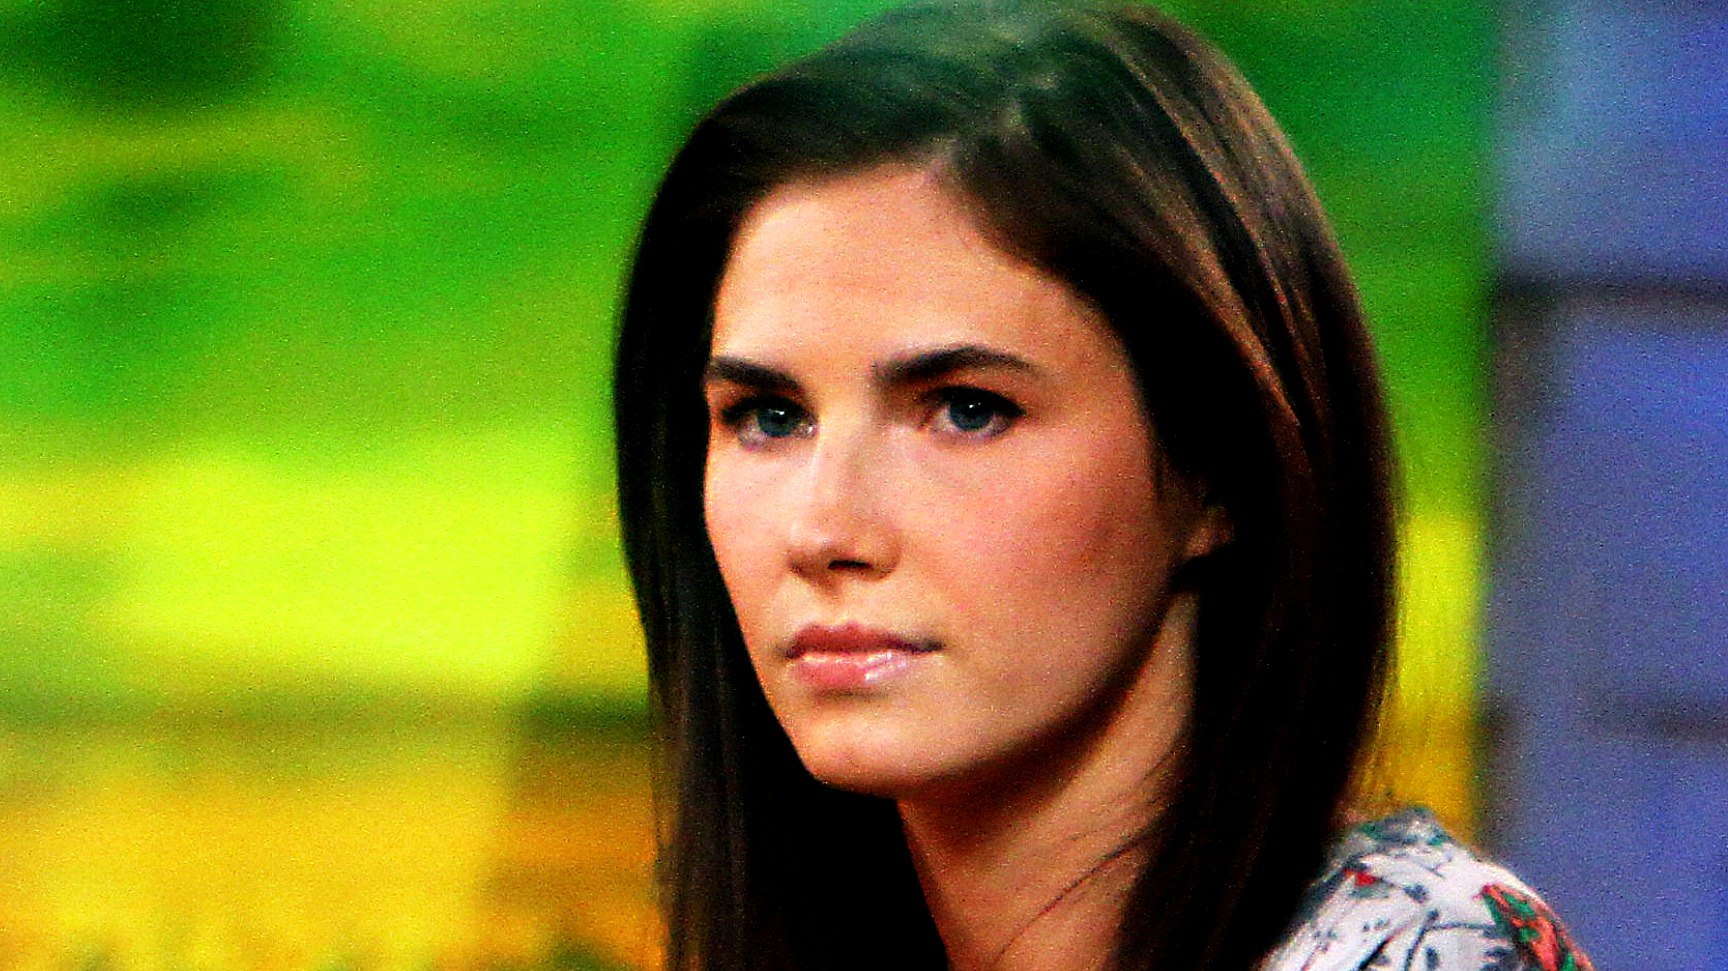 Amanda Knox is guiltybut is this the end advise